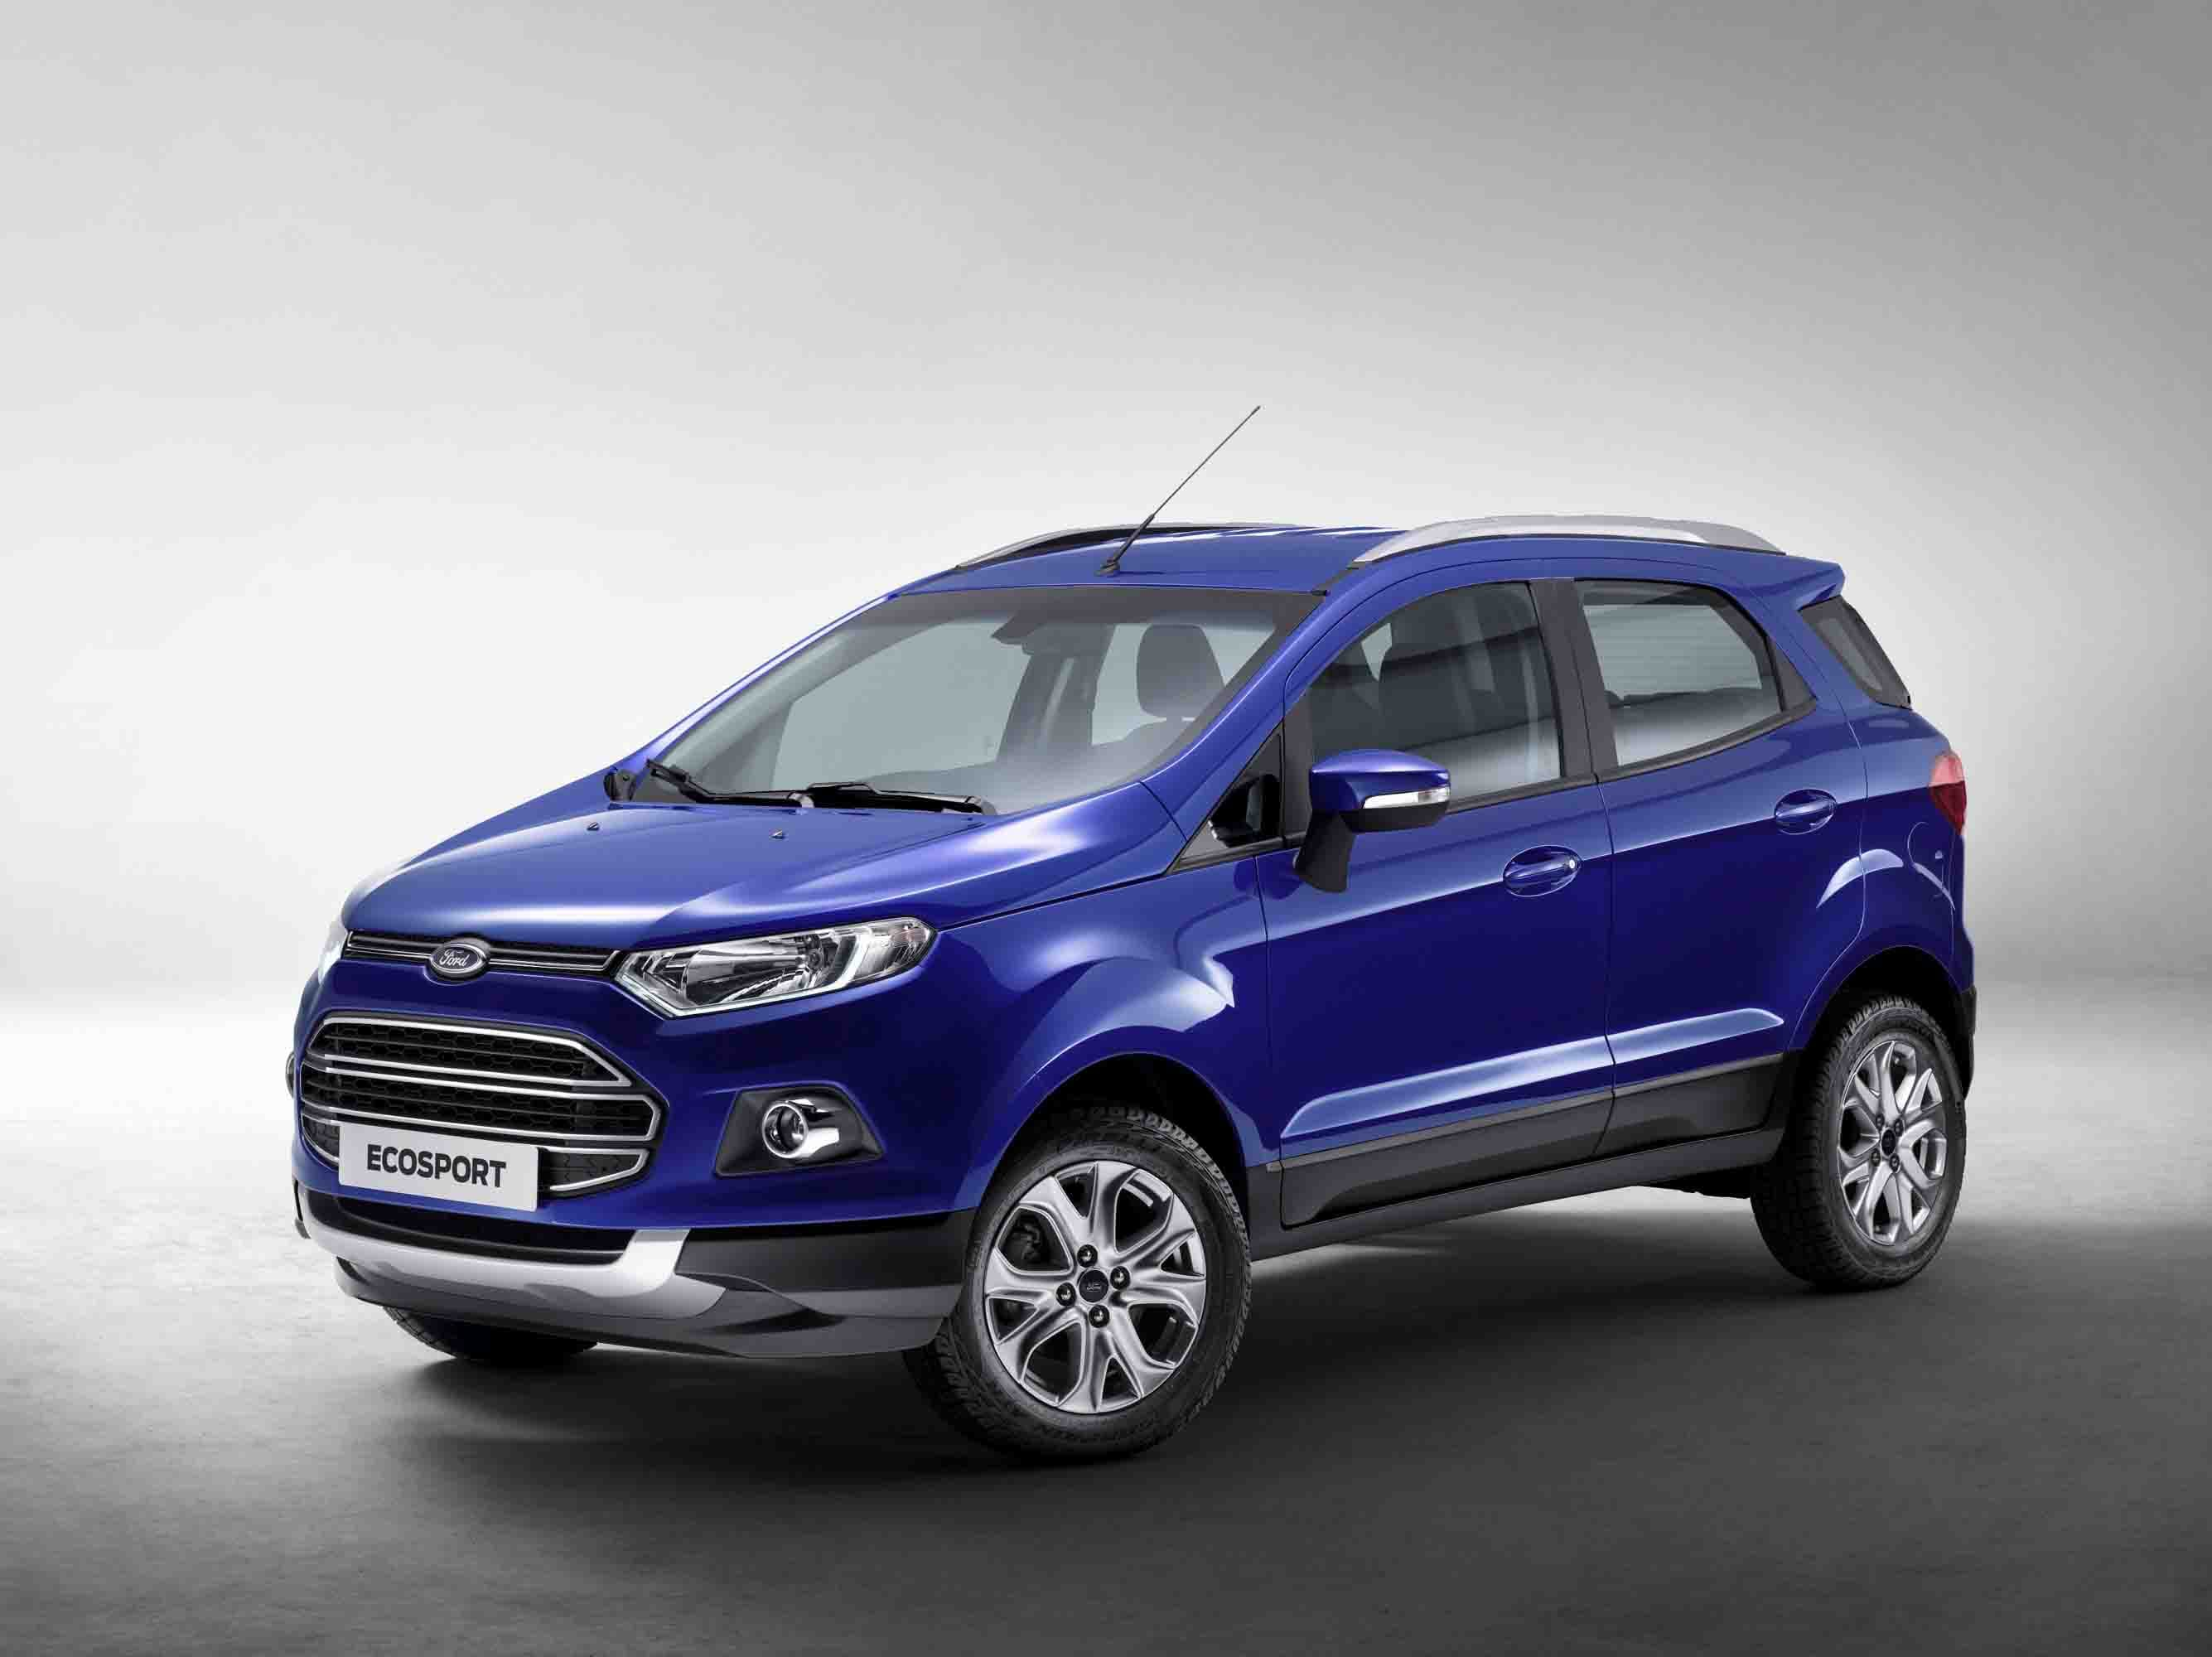 ford ecosport 1 5 tdci diesel ambiente price in india features car specifications review. Black Bedroom Furniture Sets. Home Design Ideas